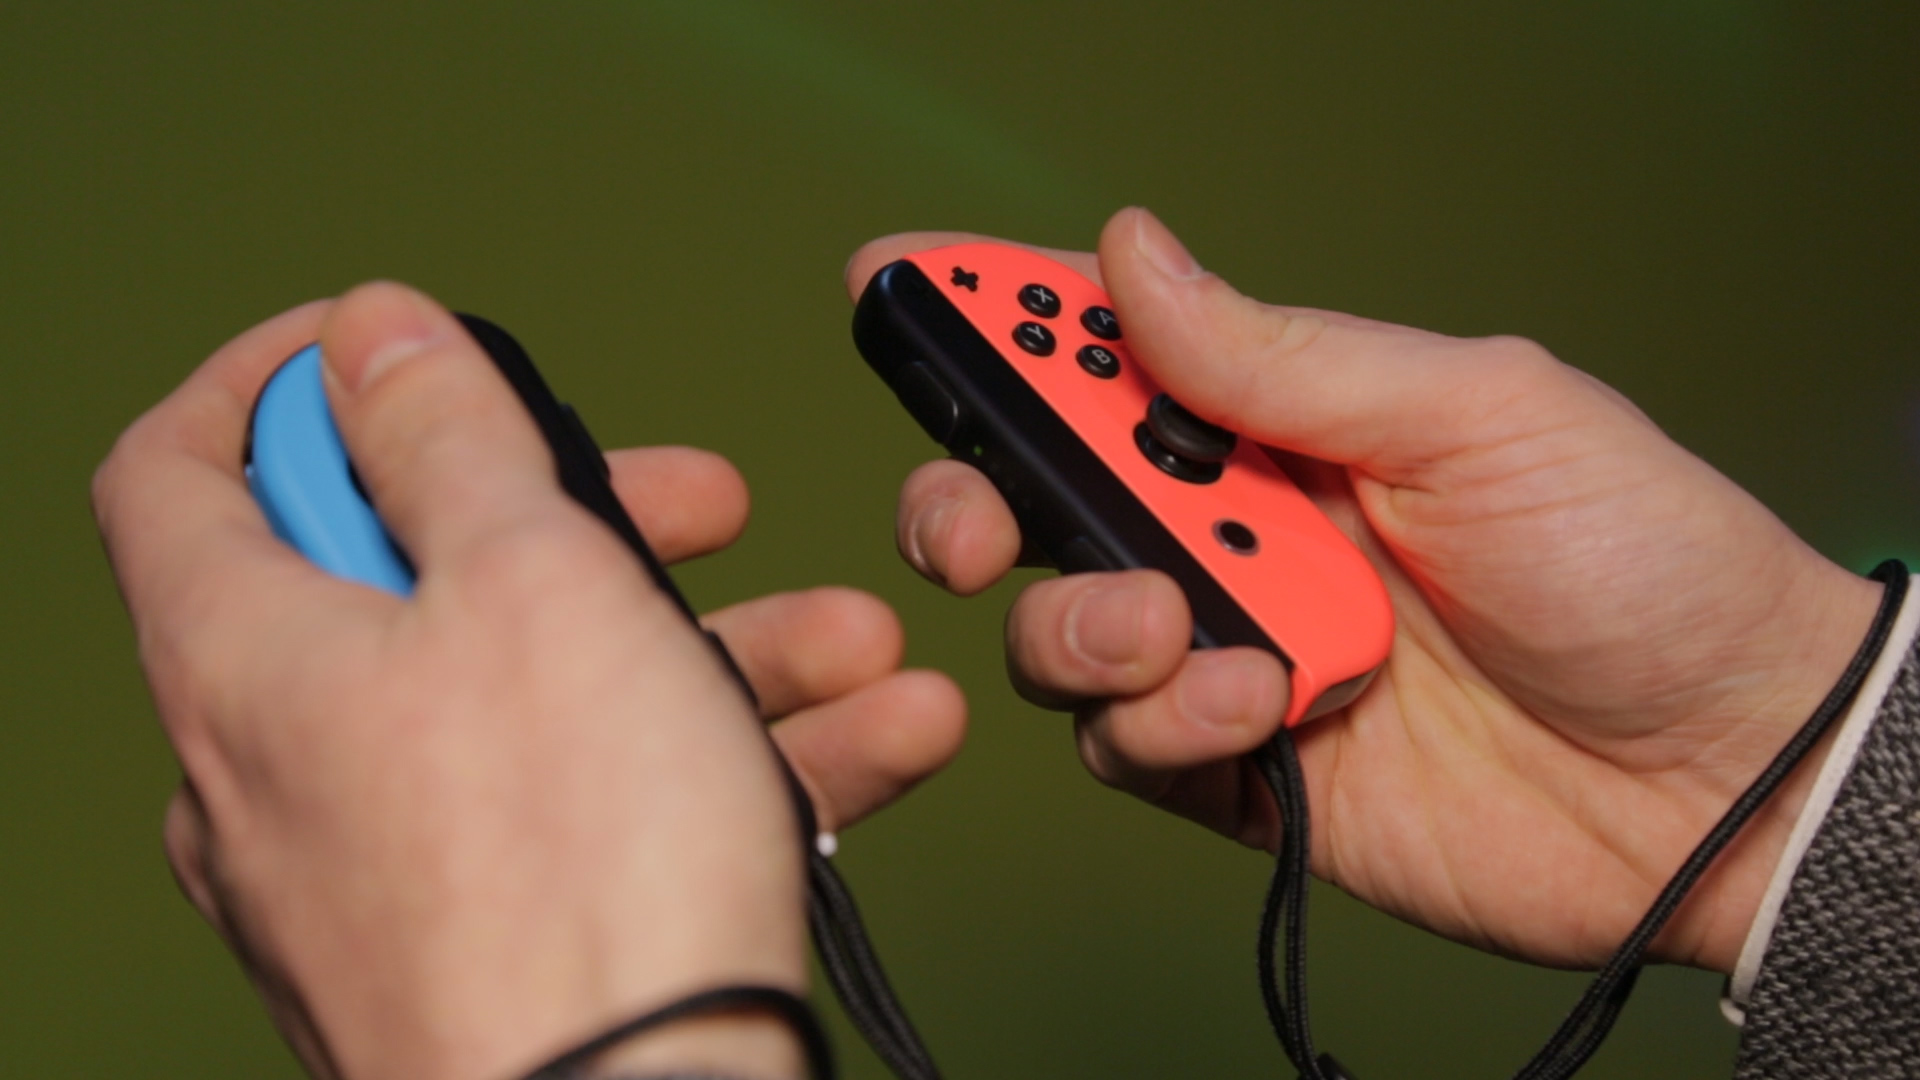 HBCmqXbsWTt36sRTrU3KfJ - Nintendo Switch accessories: items you need to make the most of your console